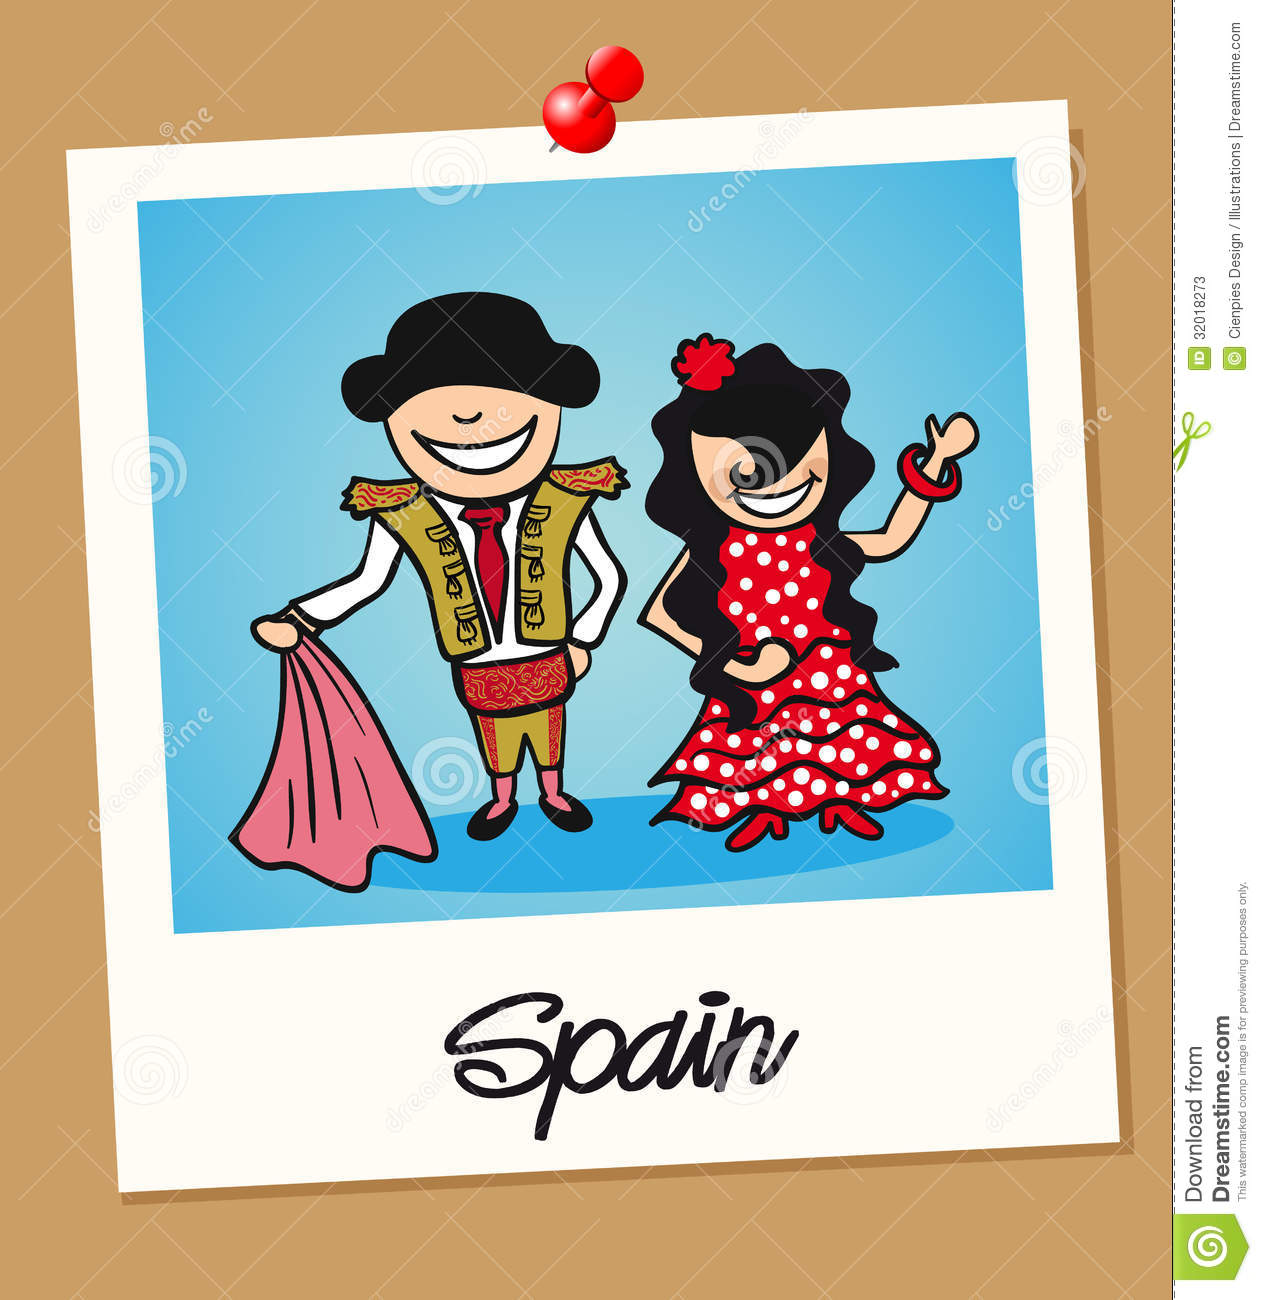 spanish people and spain Spanish couples began controlling their family size long ago, and spain now permits divorce, so more spanish women are finding new kinds of freedom from their traditional roles as wives and mothers of large families.